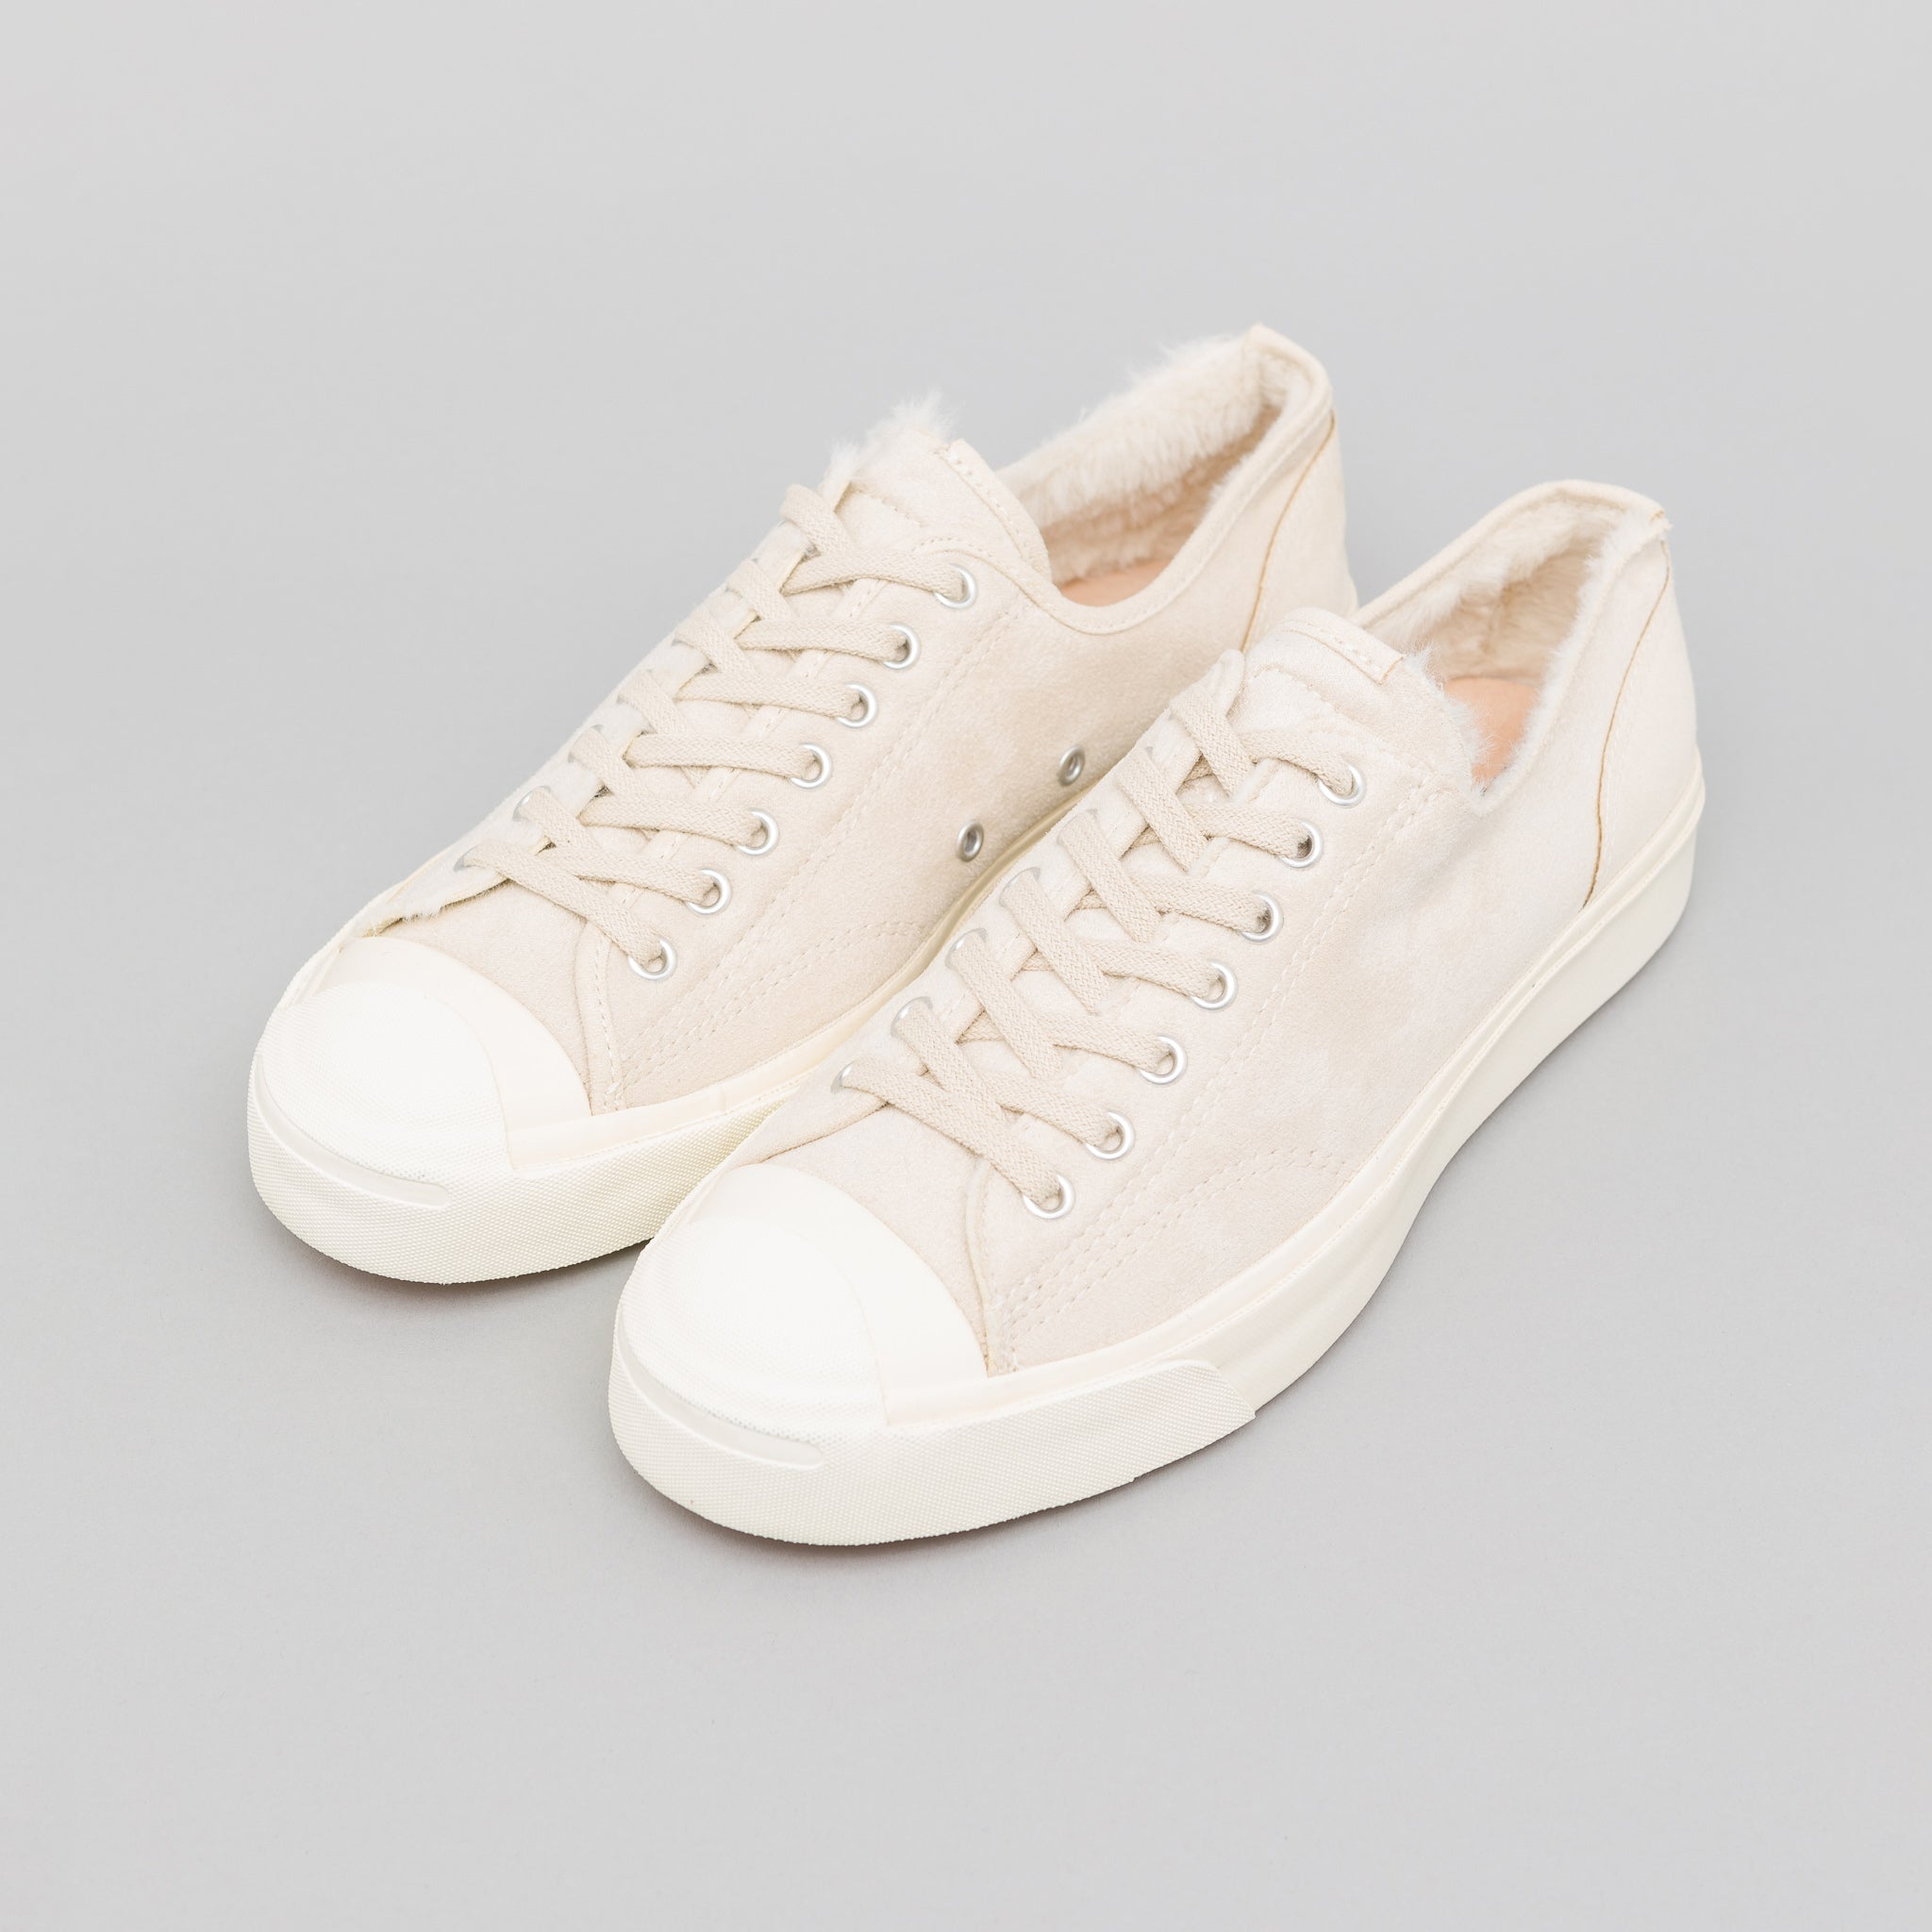 x CLOT Jack Purcell Ox in White Swan